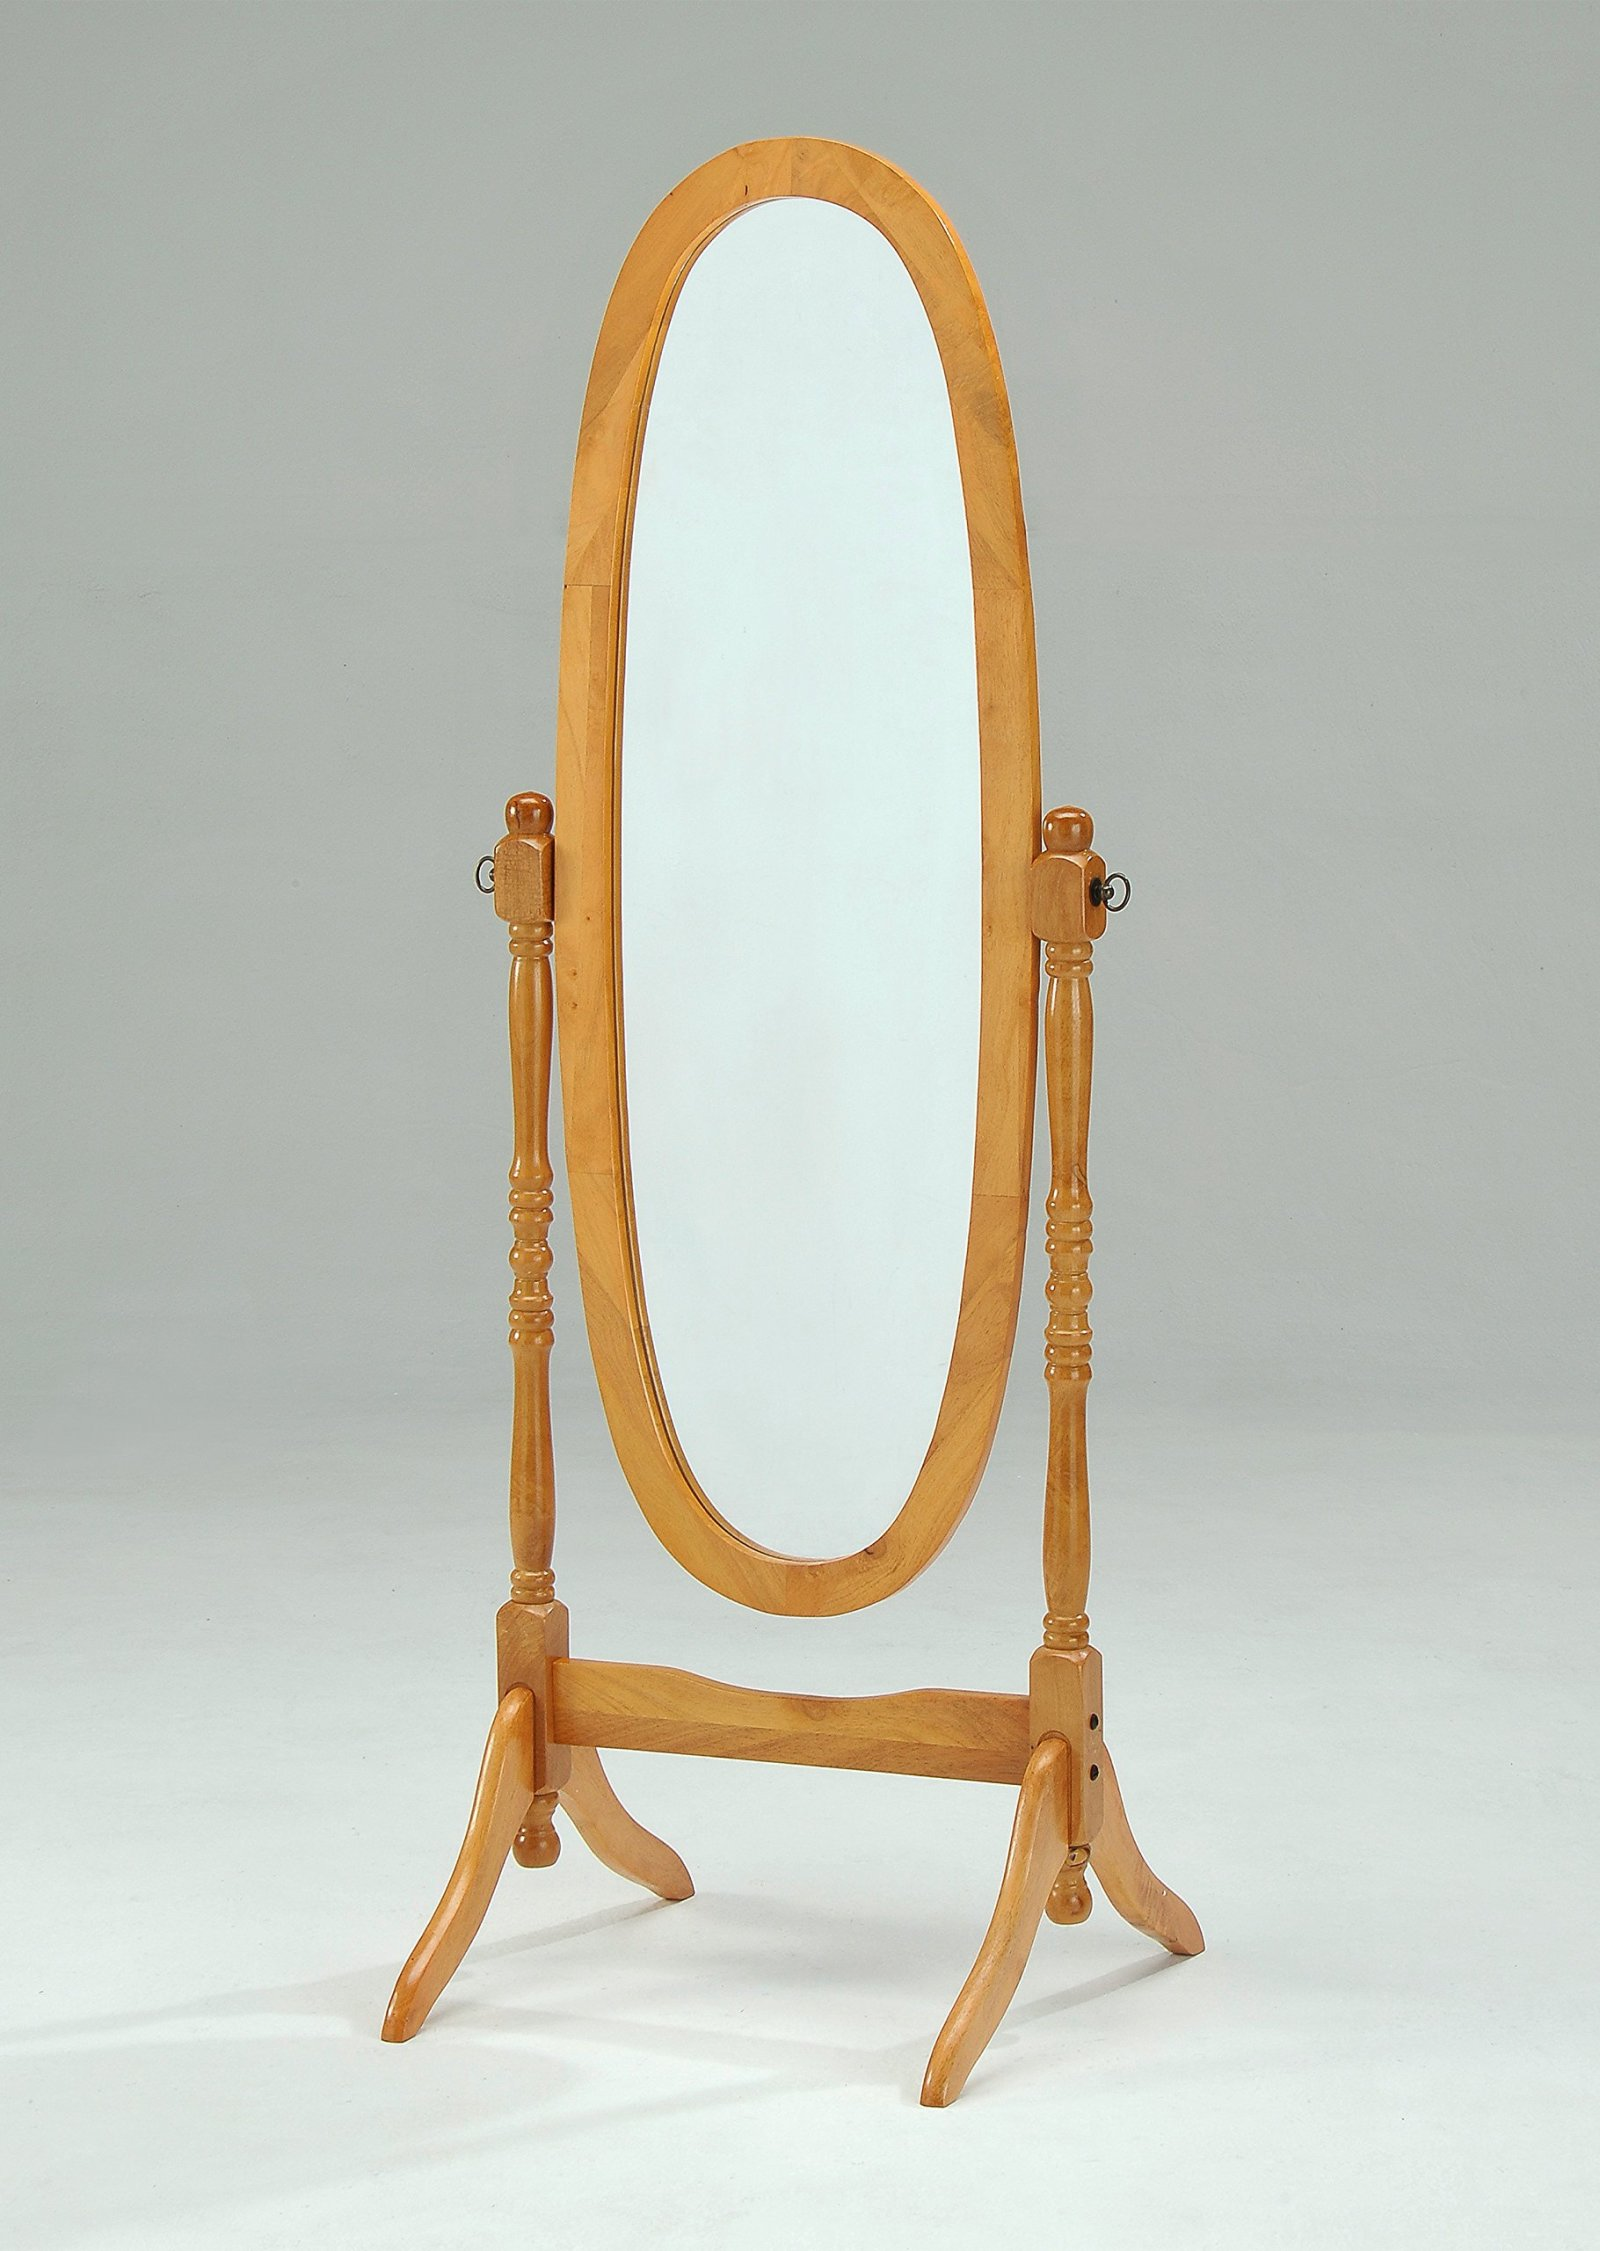 Wooden Cheval Floor Mirror Standing Antique Dressing Table Oak Finish Oval